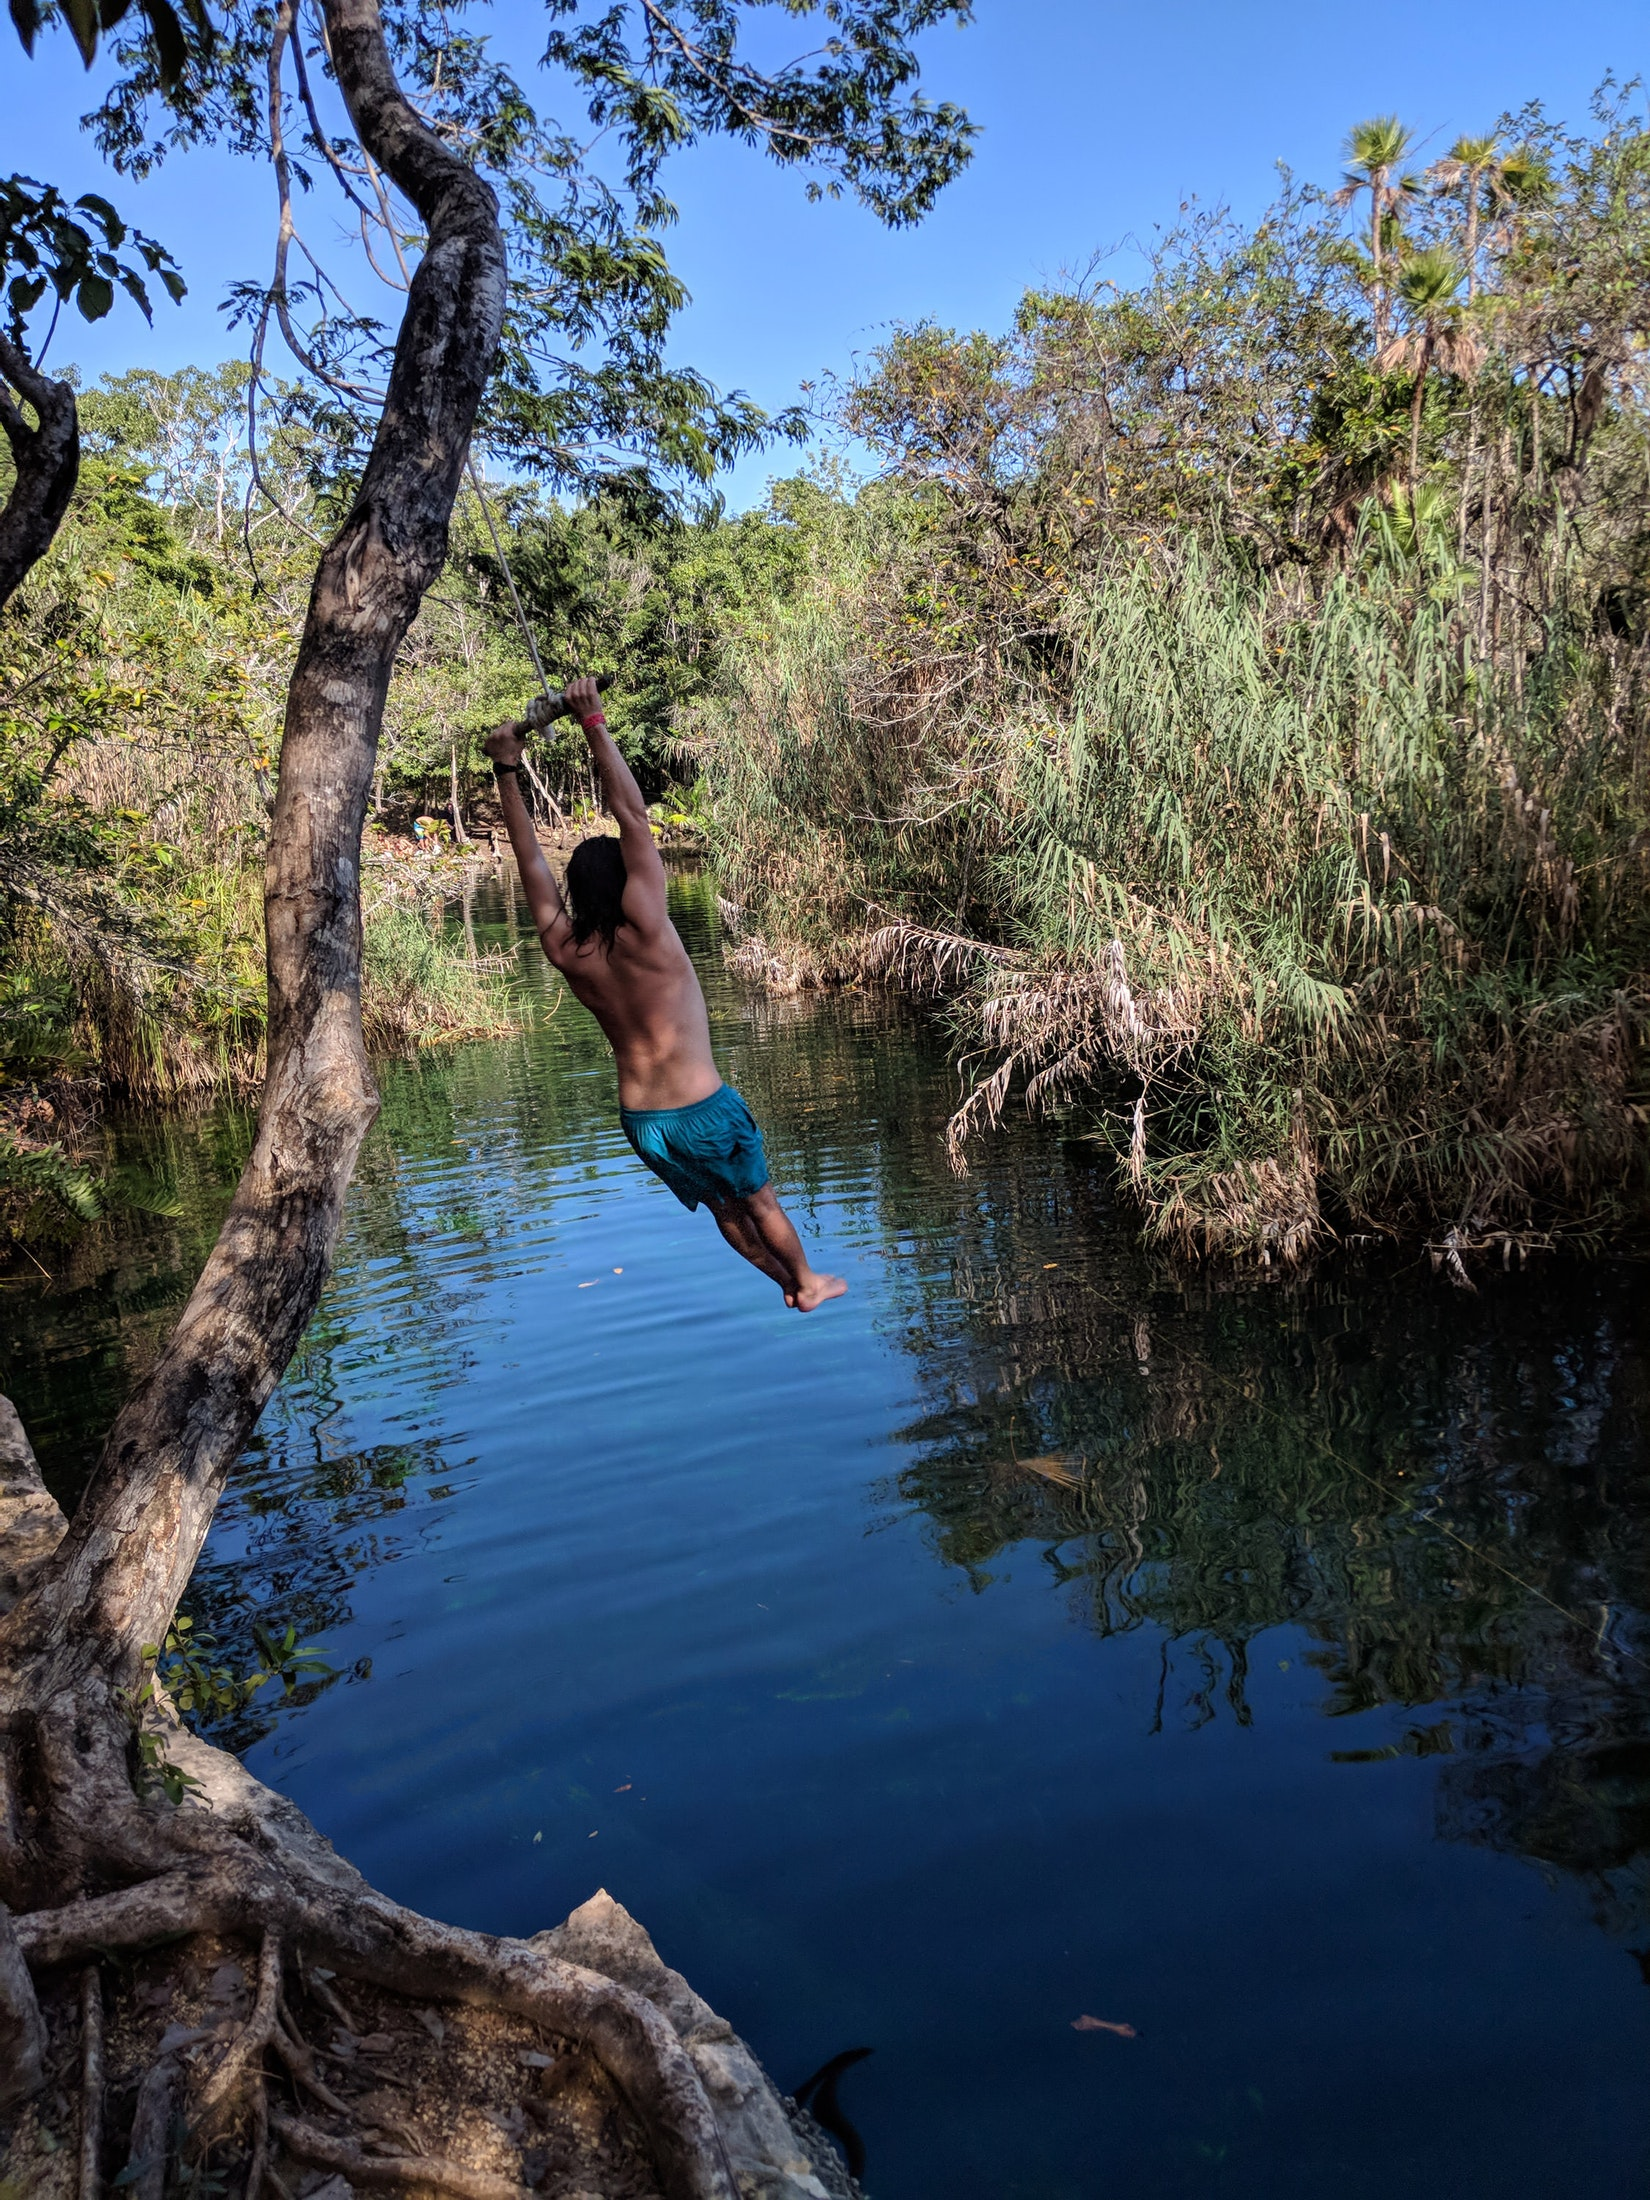 A friend swinging on a rope into a cenote